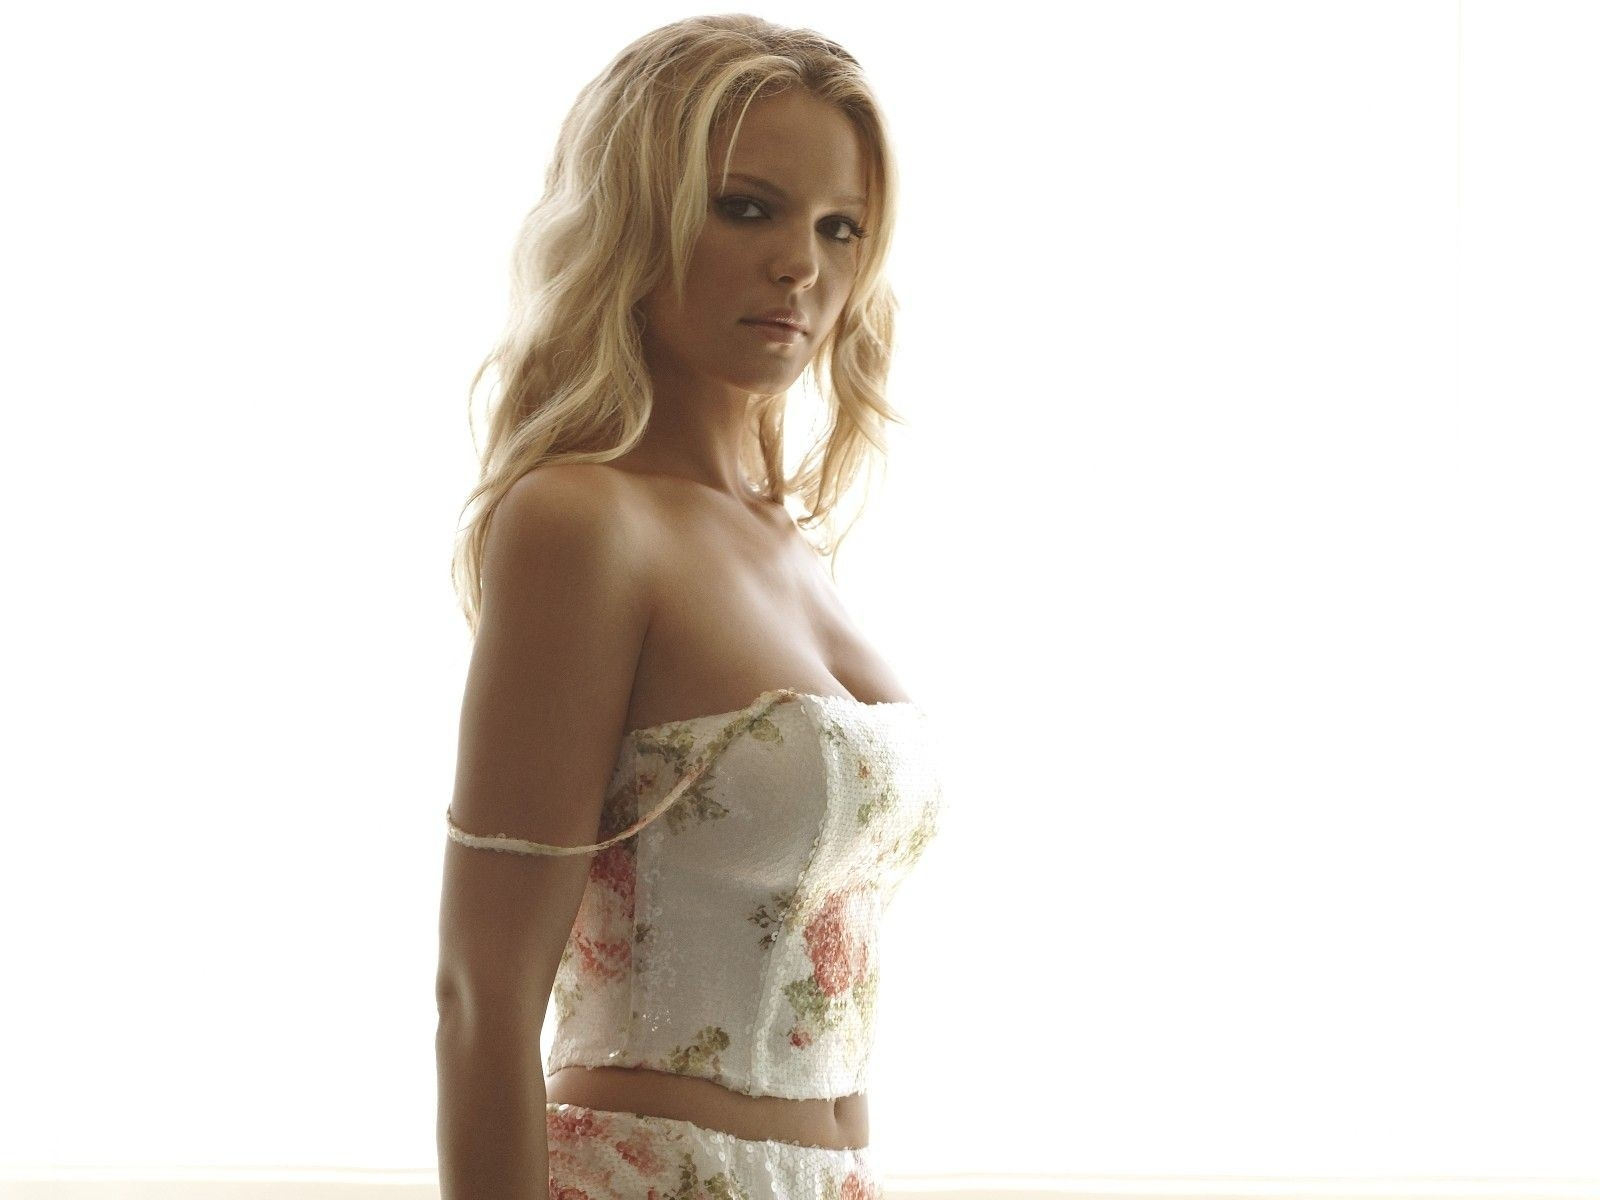 Wallpaper di Katherine Heigl in lingerie